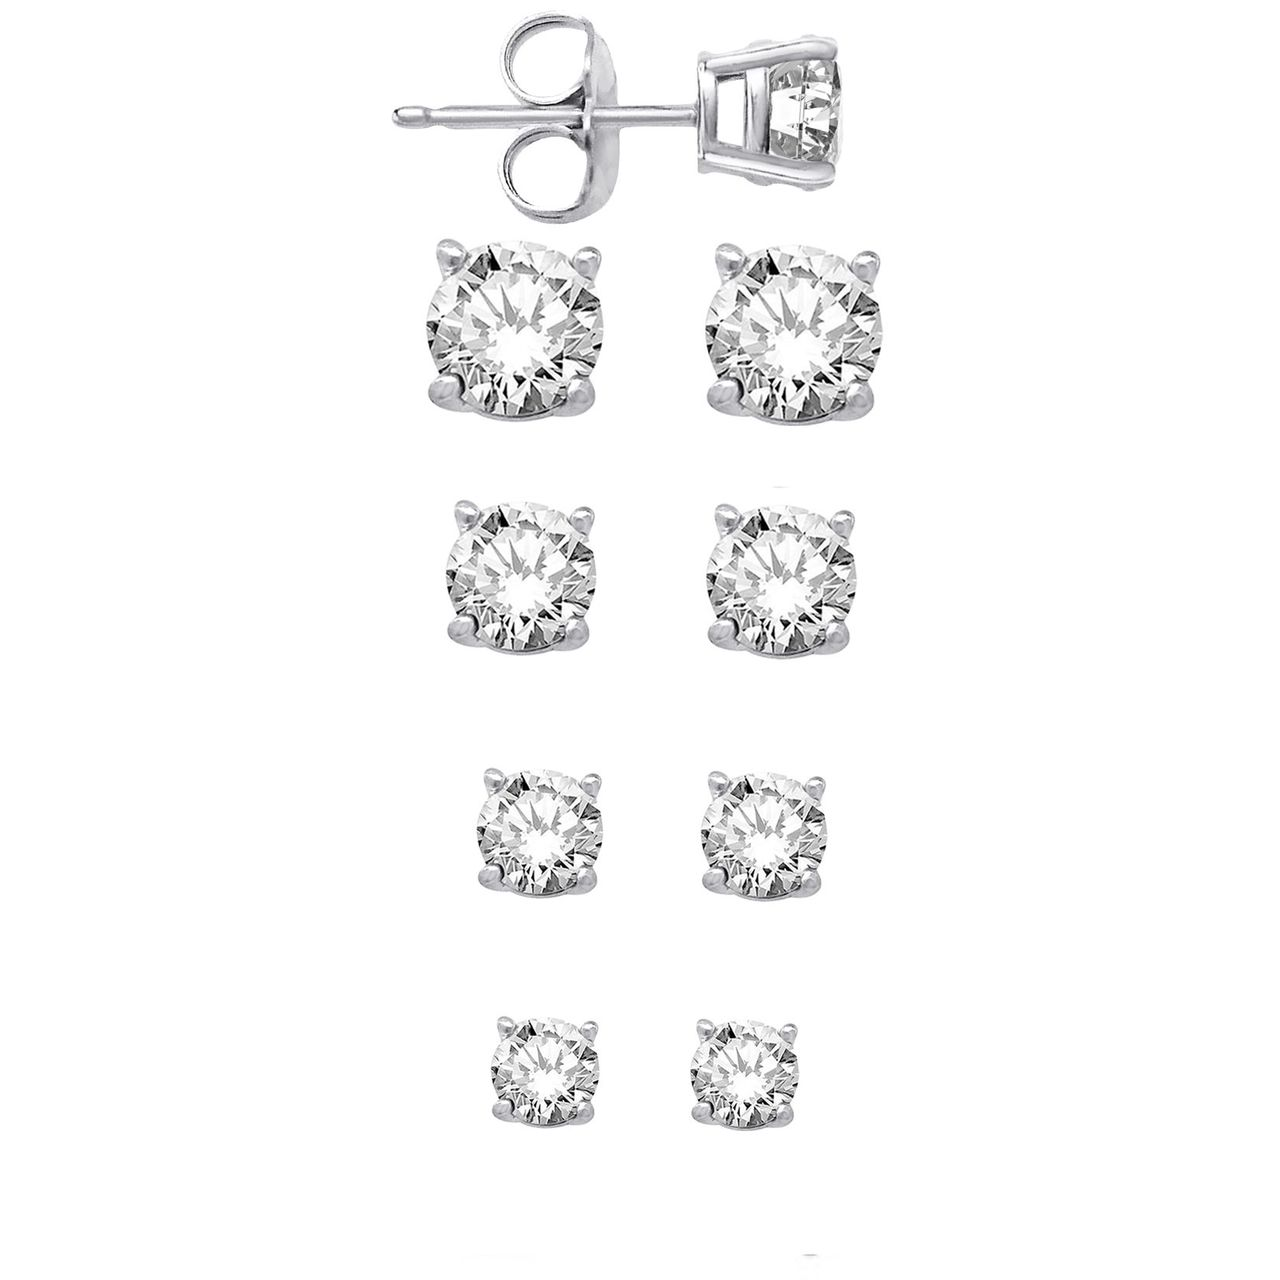 Sterling Silver Round Cz Stud Earrings Set Of Four Sizes 4mm 5mm 6mm 7mm